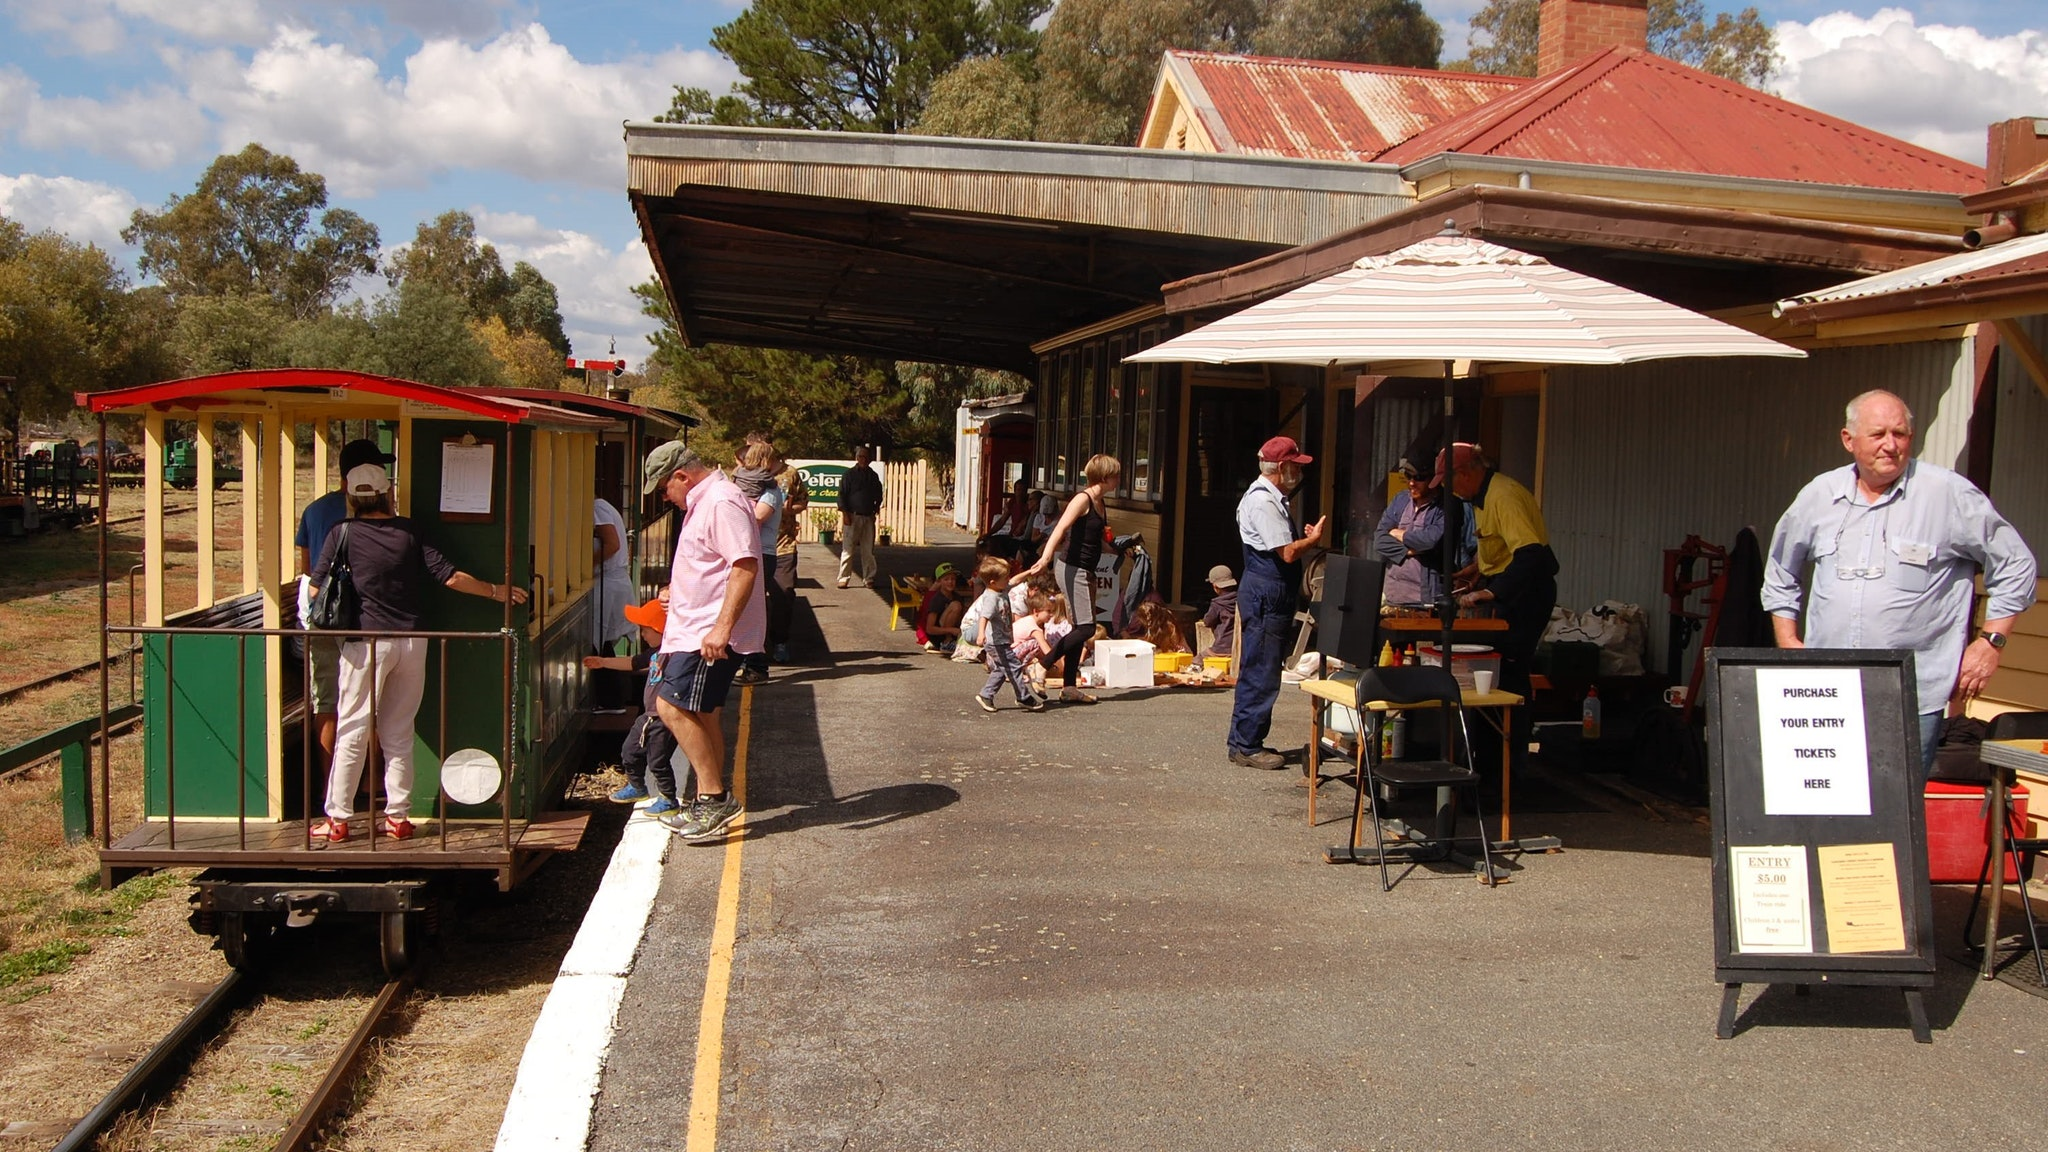 Alexandra Timber tramway Museum